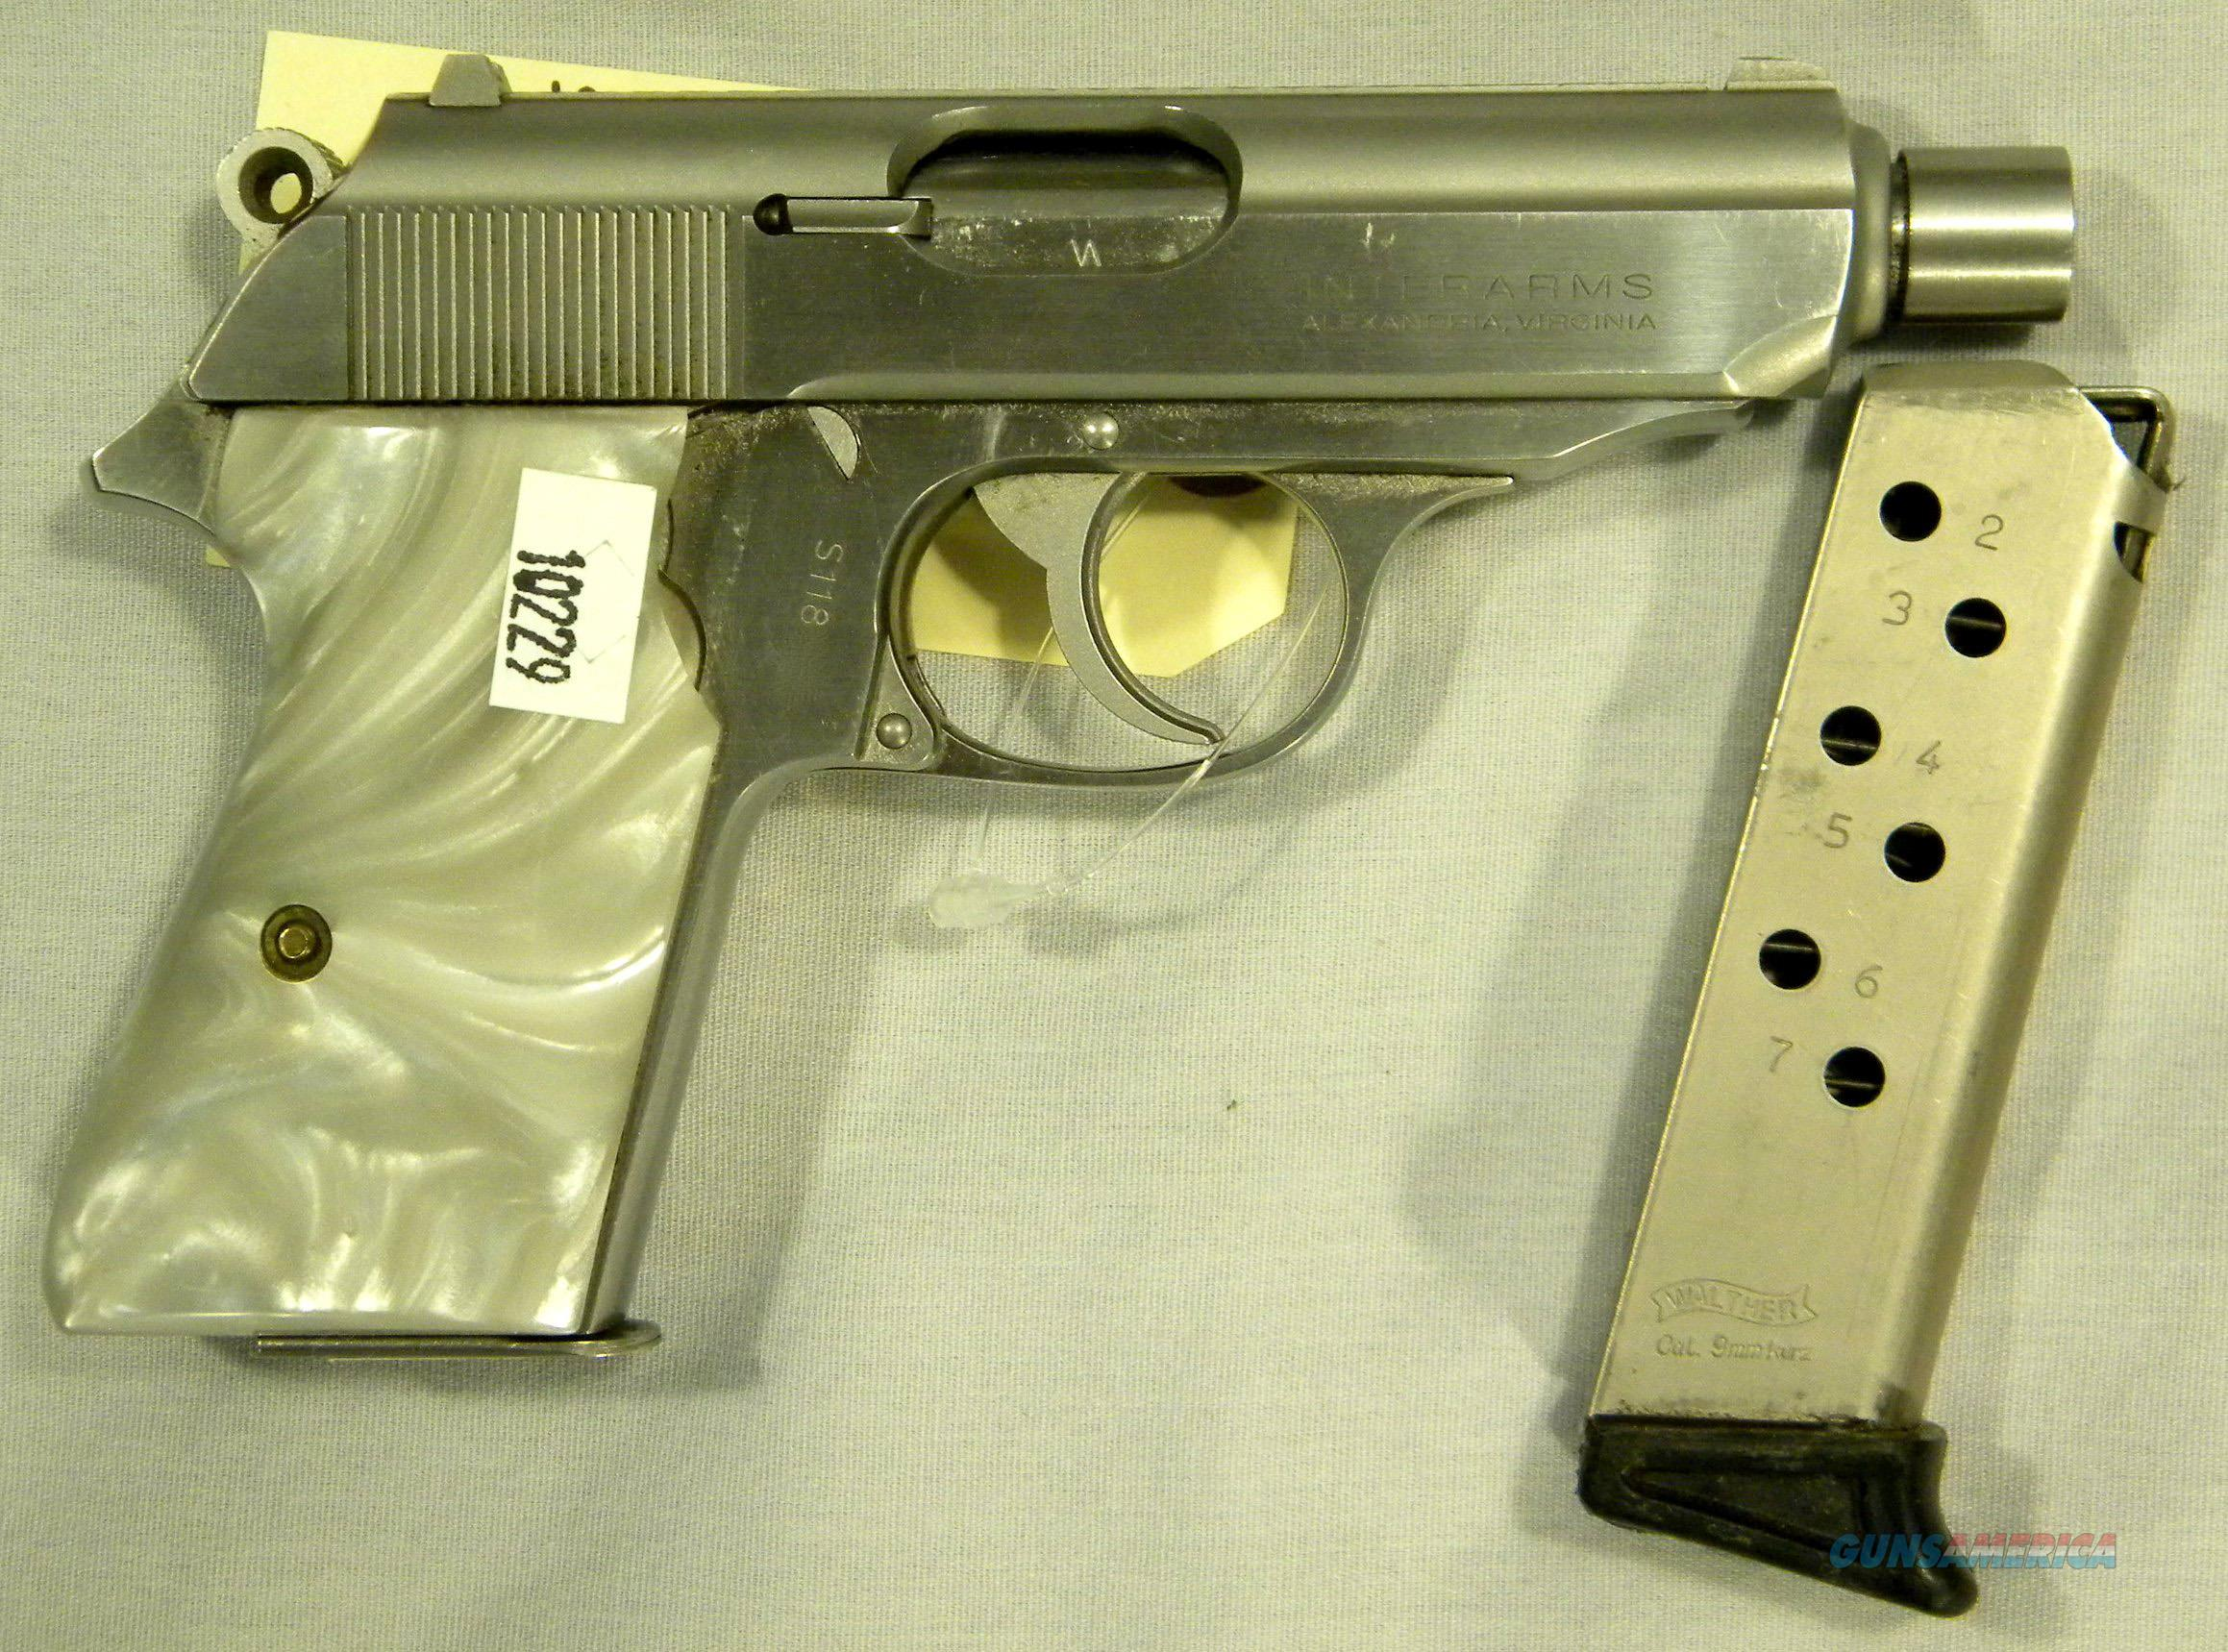 Rare Threaded-Barrel Walther PPK/S In Stainless Steel, 9mm Kurz/.380 ACP Semi-Automatic Pistol  Guns > Pistols > Walther Pistols > Post WWII > PPK Series